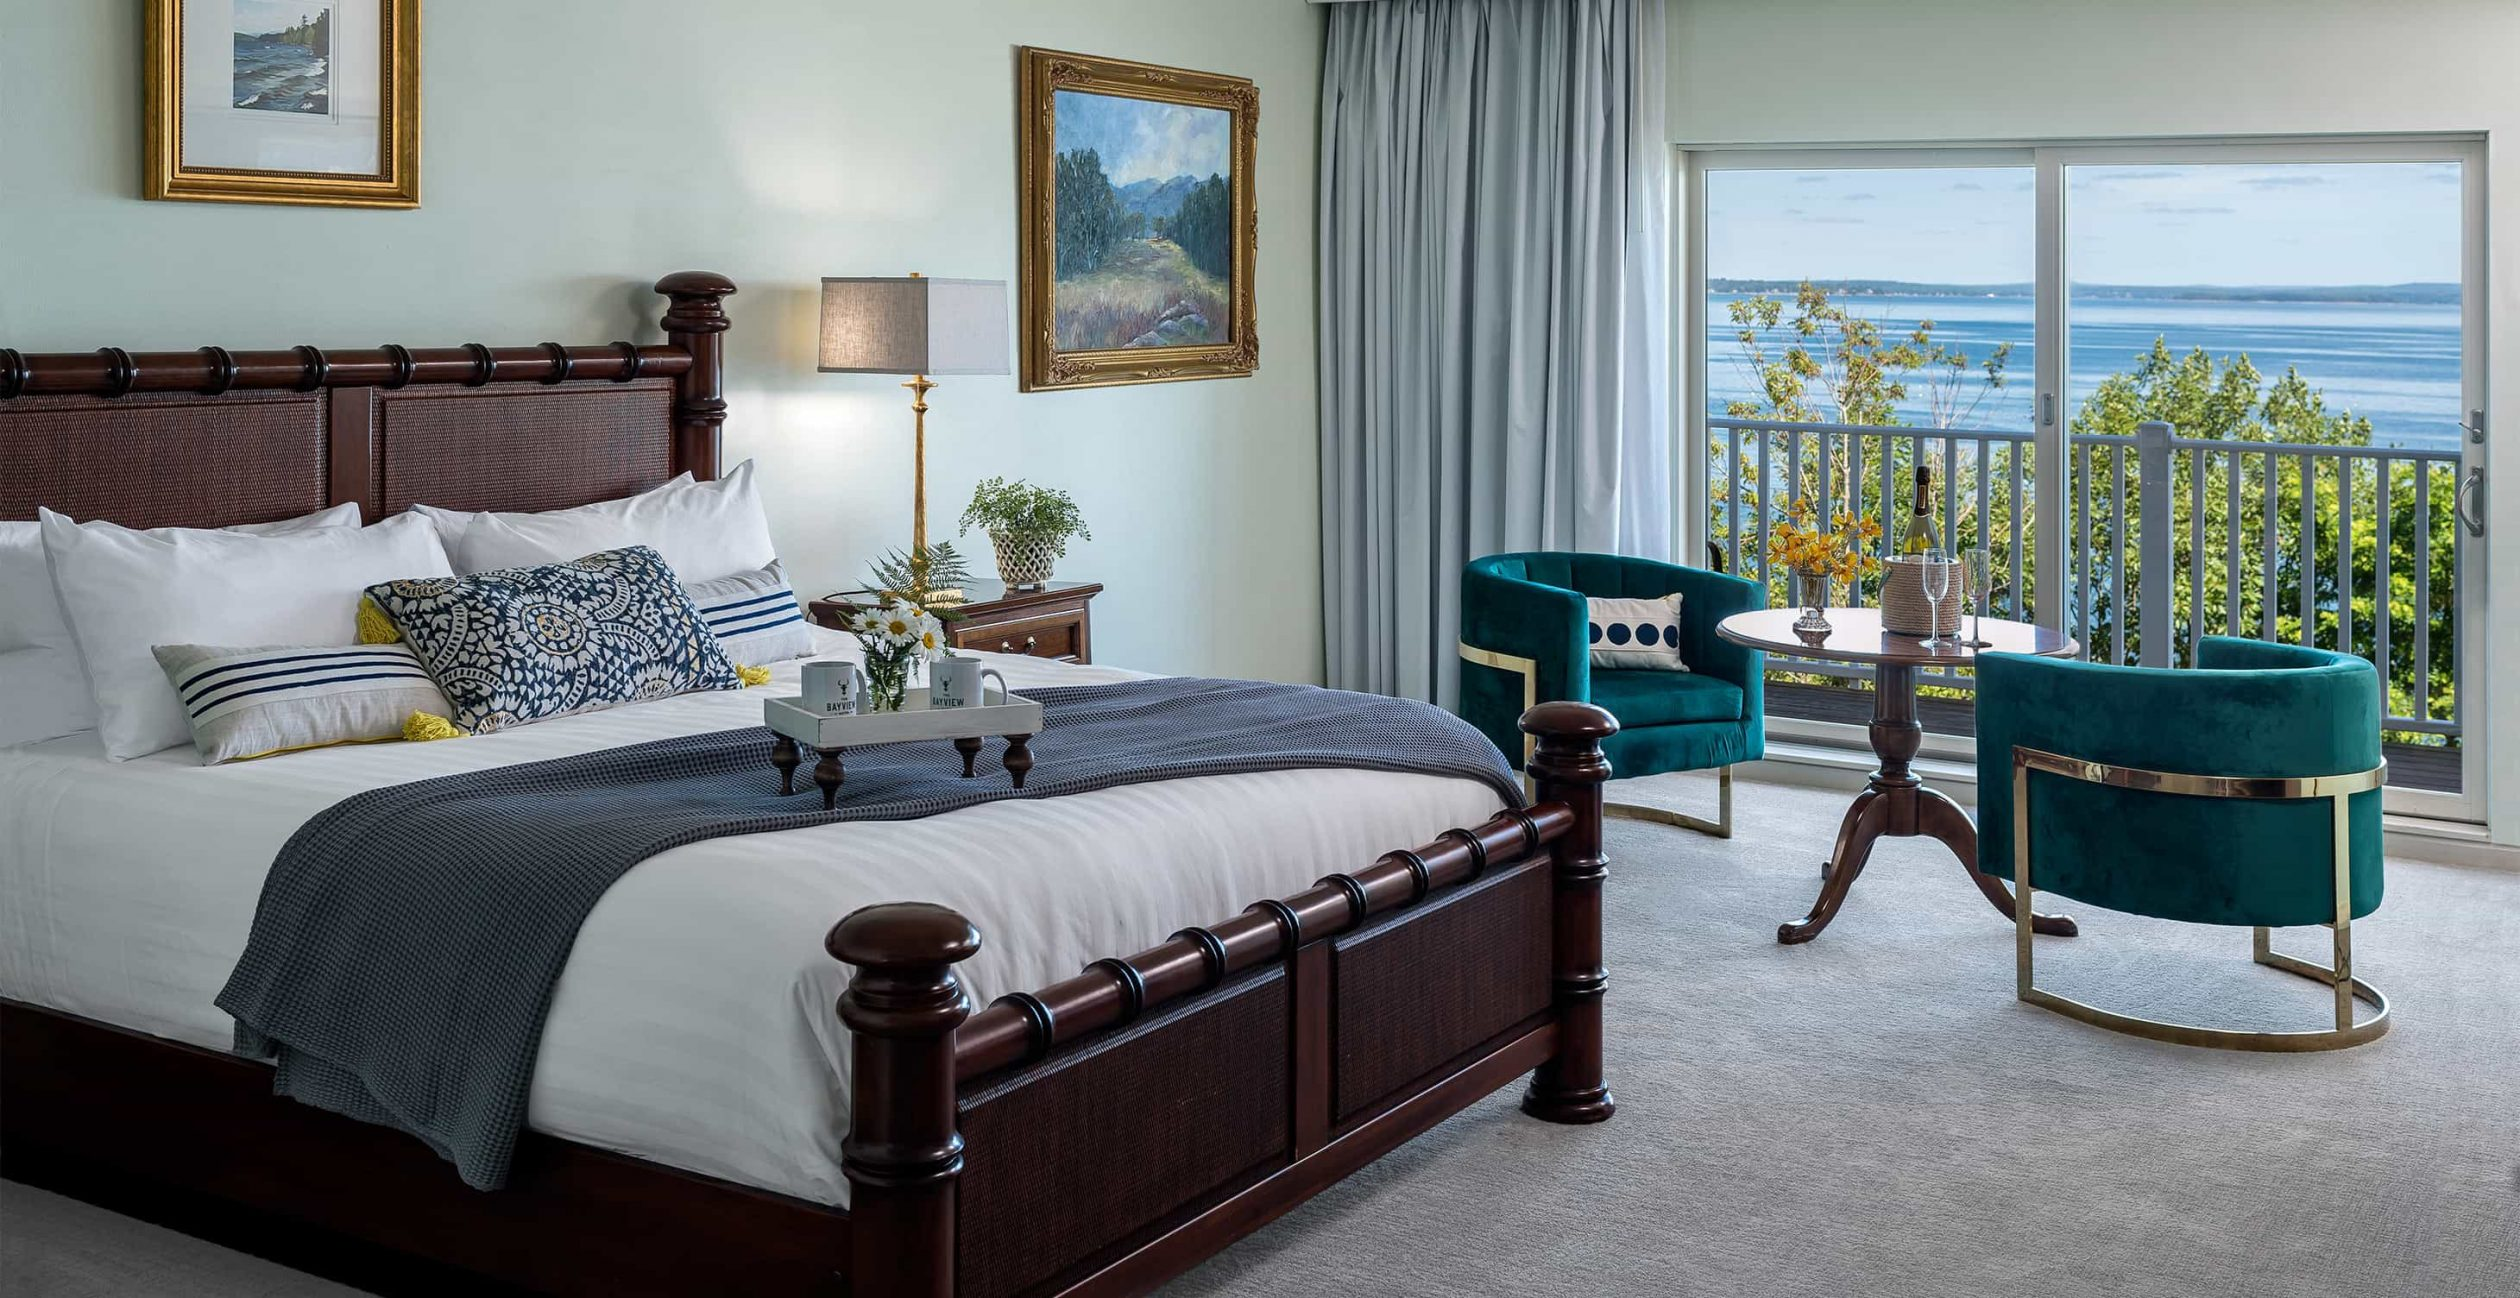 King Bed in Island Level Room at our boutique hotel in Bar Harbor